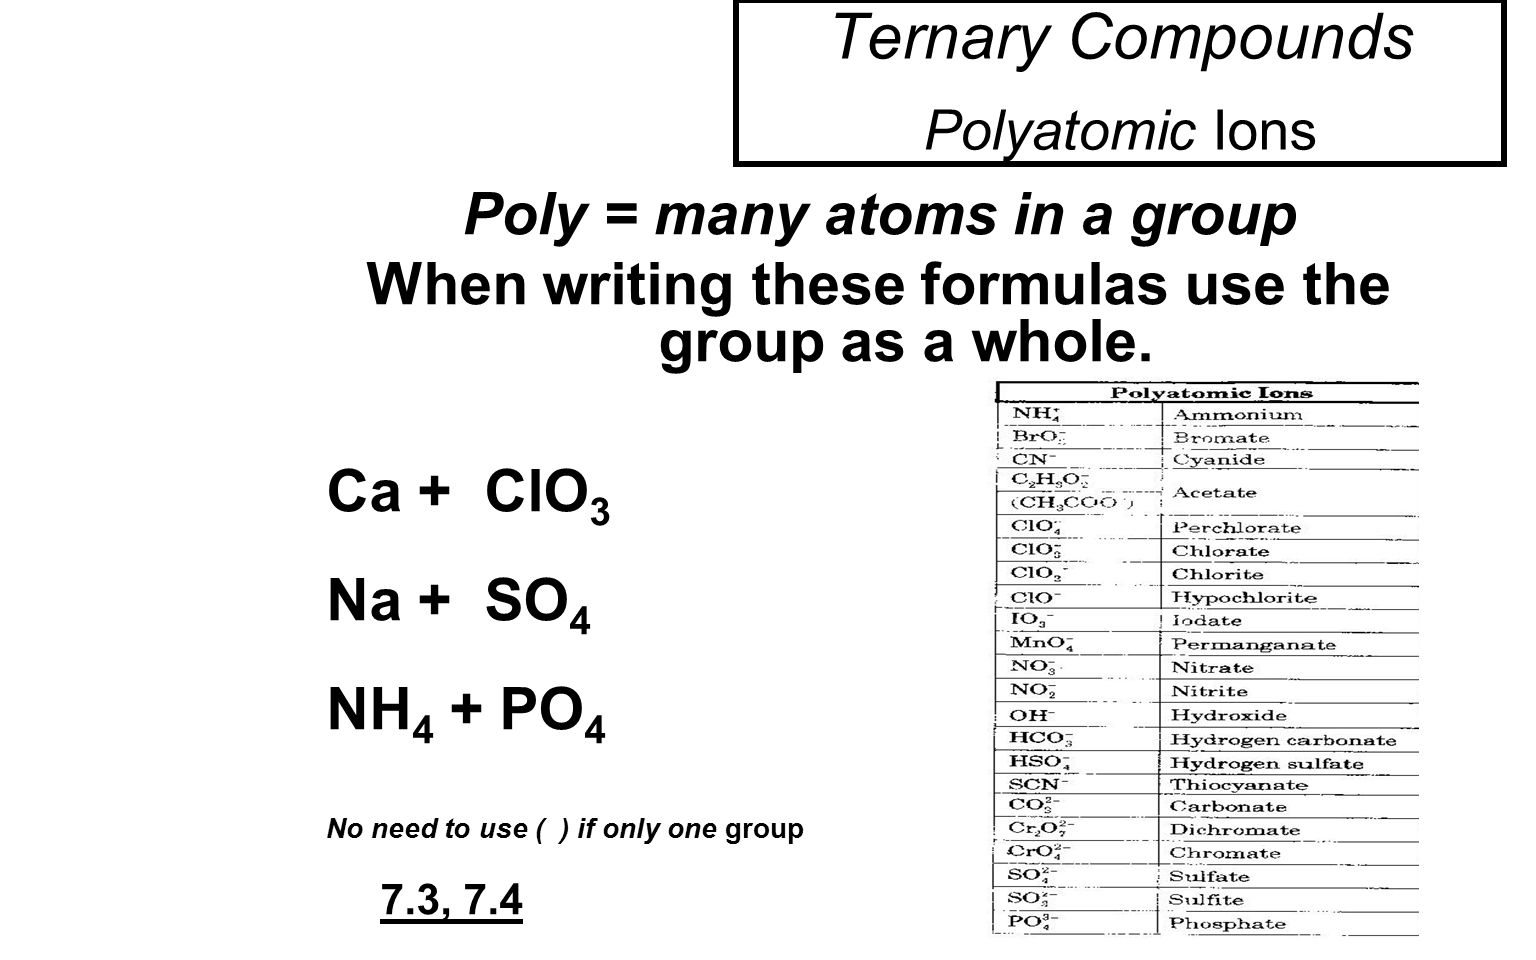 How to Write Formulas for Ionic Compounds with Polyatomic Ions